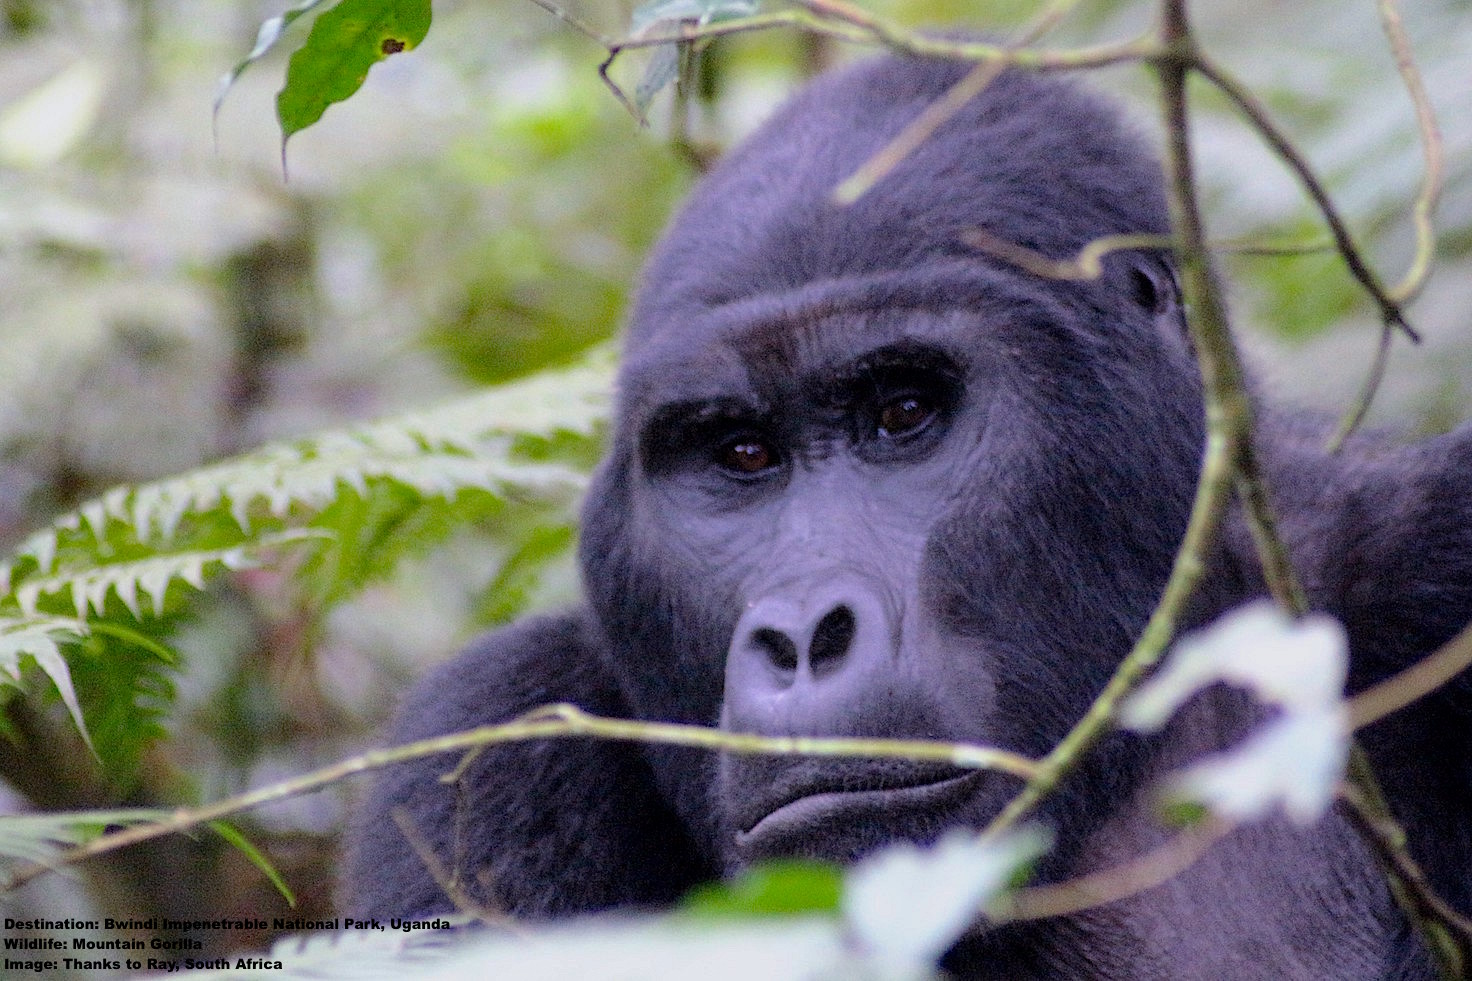 THIS SILVERBACK LETS NOTHING ESCAPE HIS STEADY GAZE, THE LEADER OF THE RUSHEGURA FAMILY GROUP WATCHES THE WATCHERS. IMAGE: THANKS TO RAY